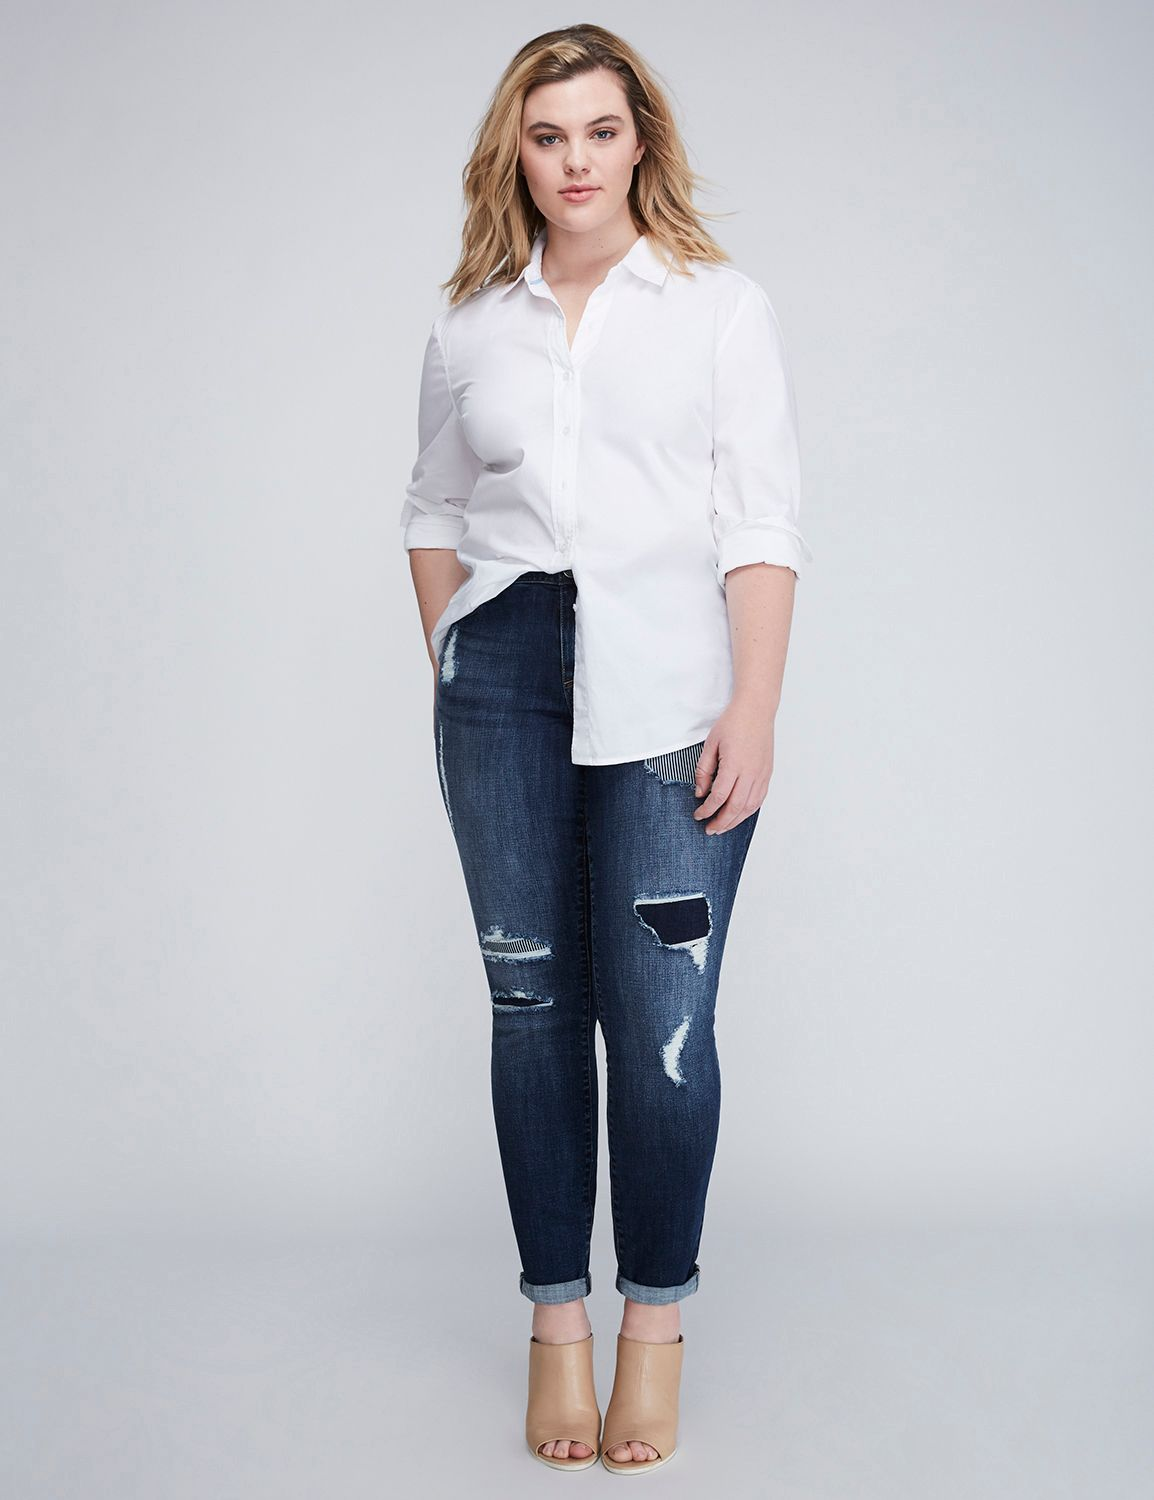 View All Women's Plus Size Jeans & Denim | Lane Bryant